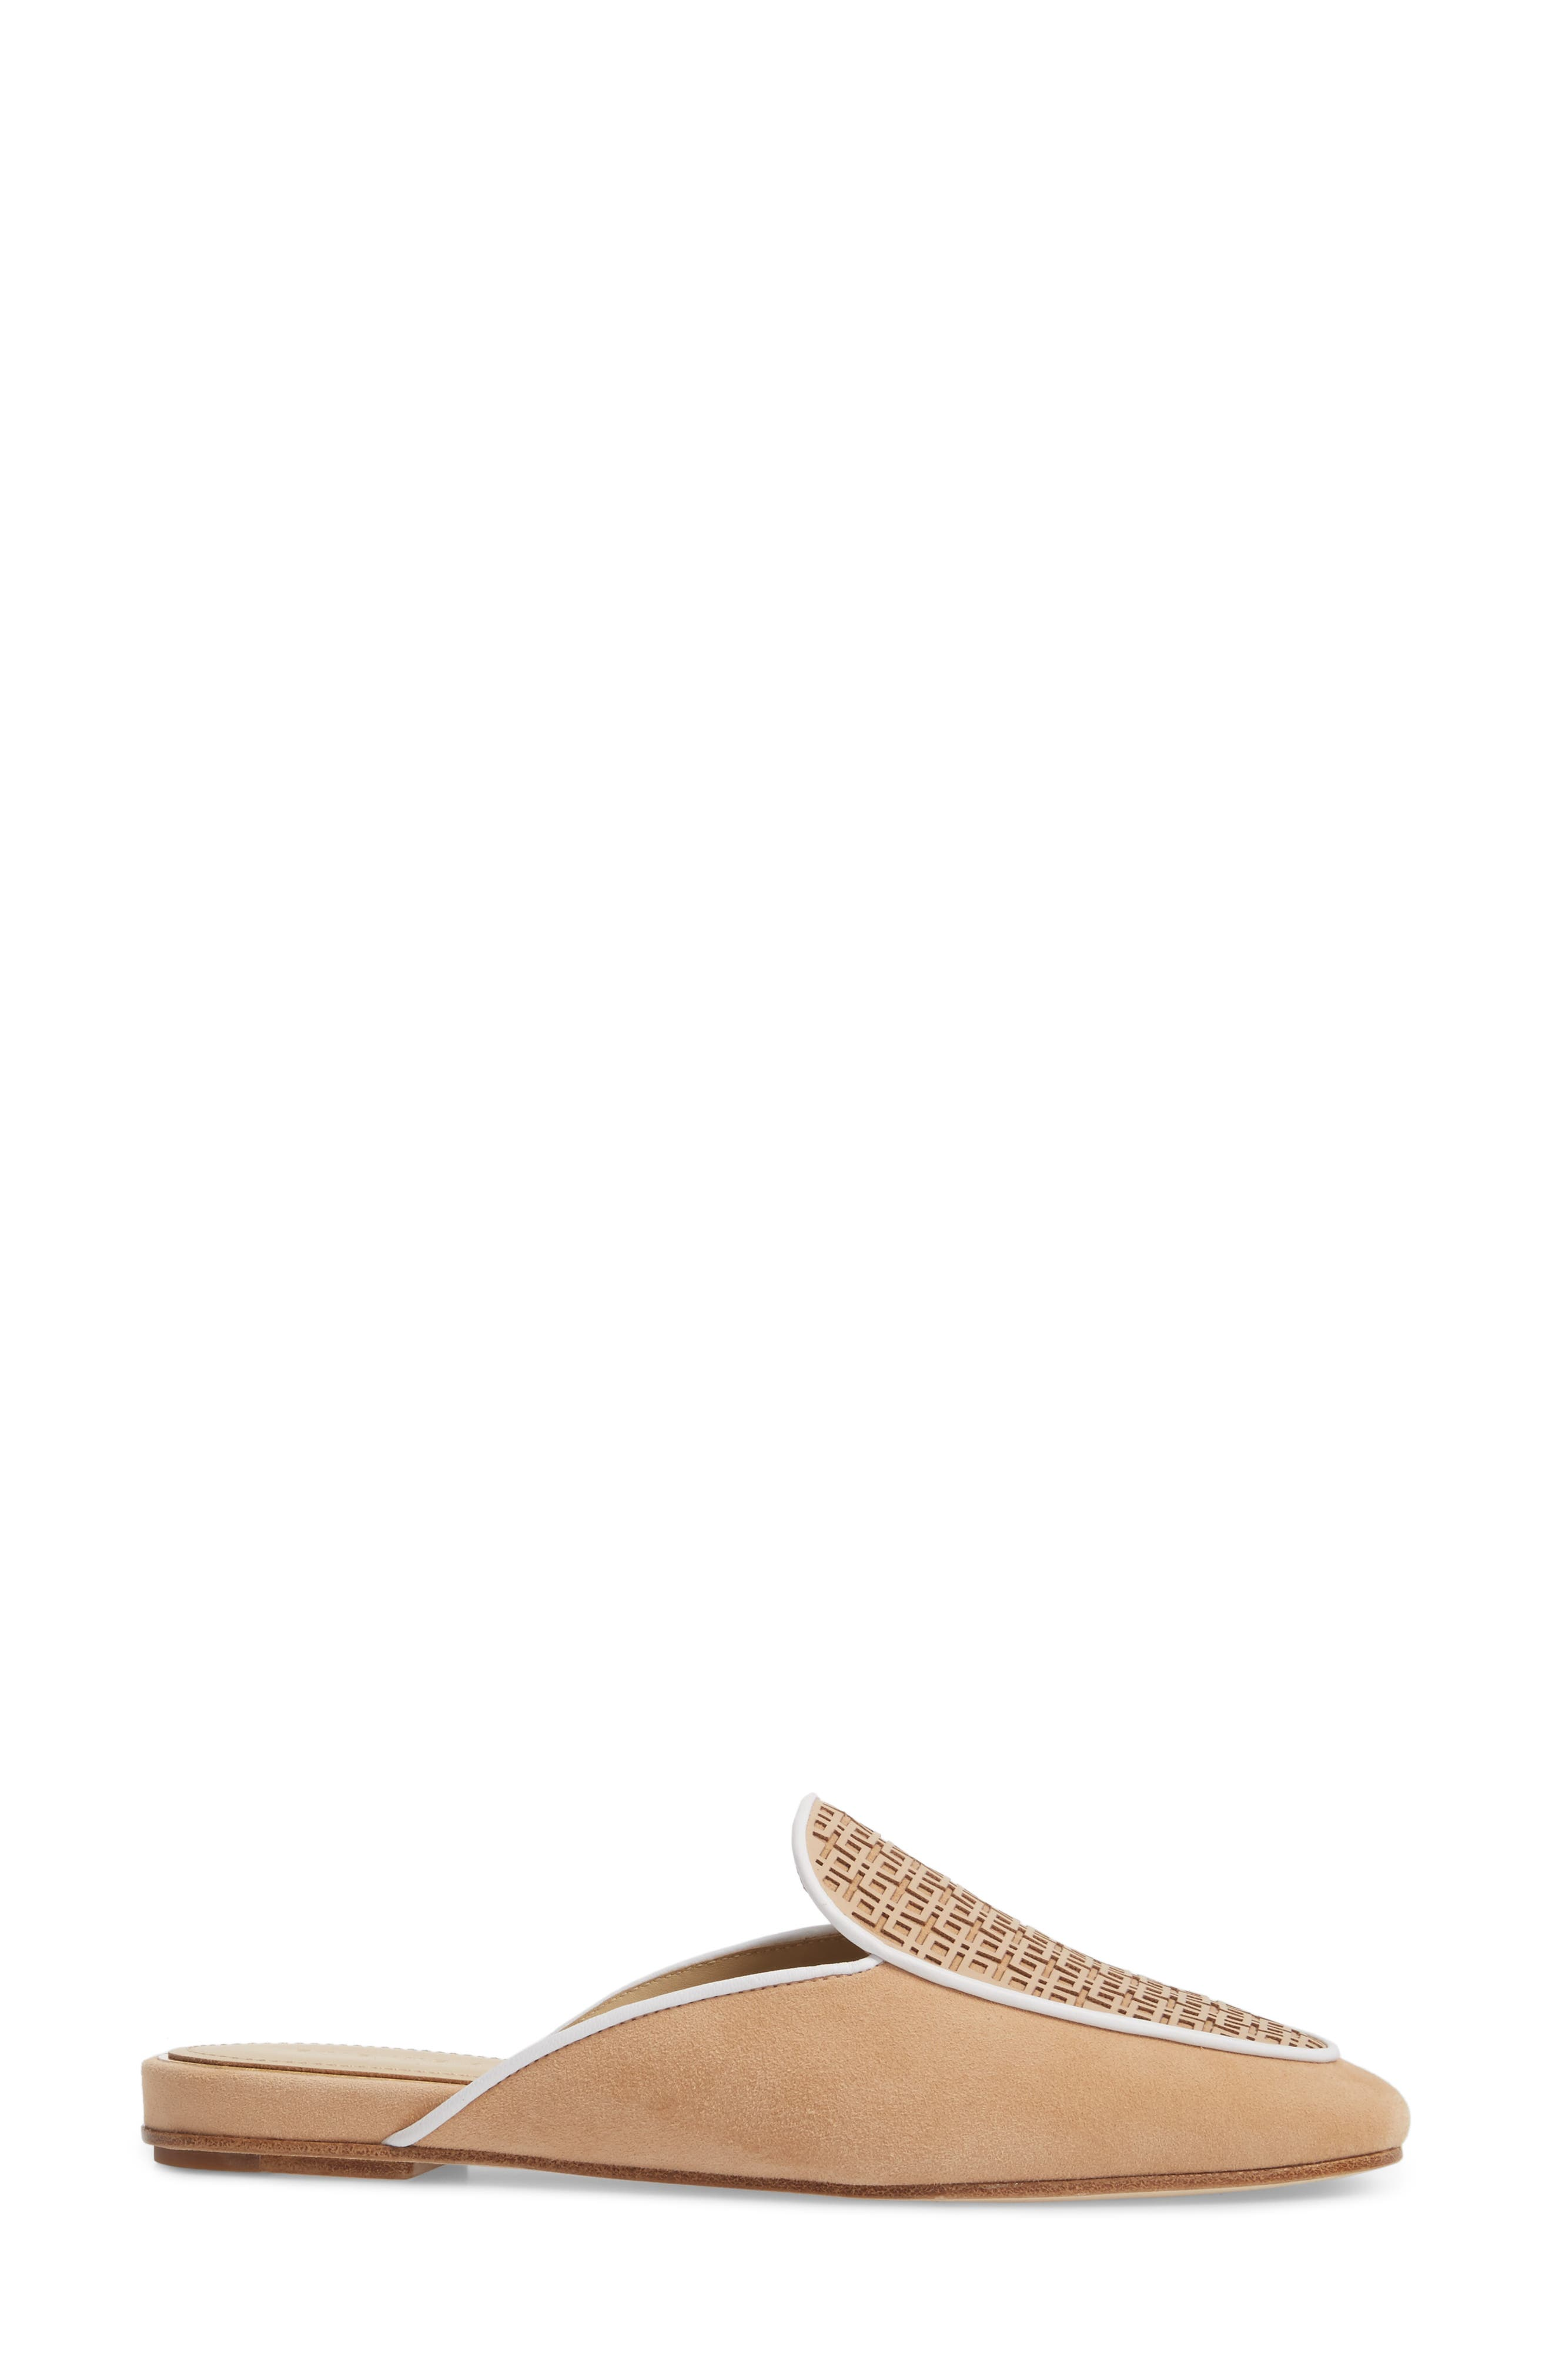 Caymen Mule,                             Alternate thumbnail 3, color,                             NATURAL/ FAWN/ WHITE